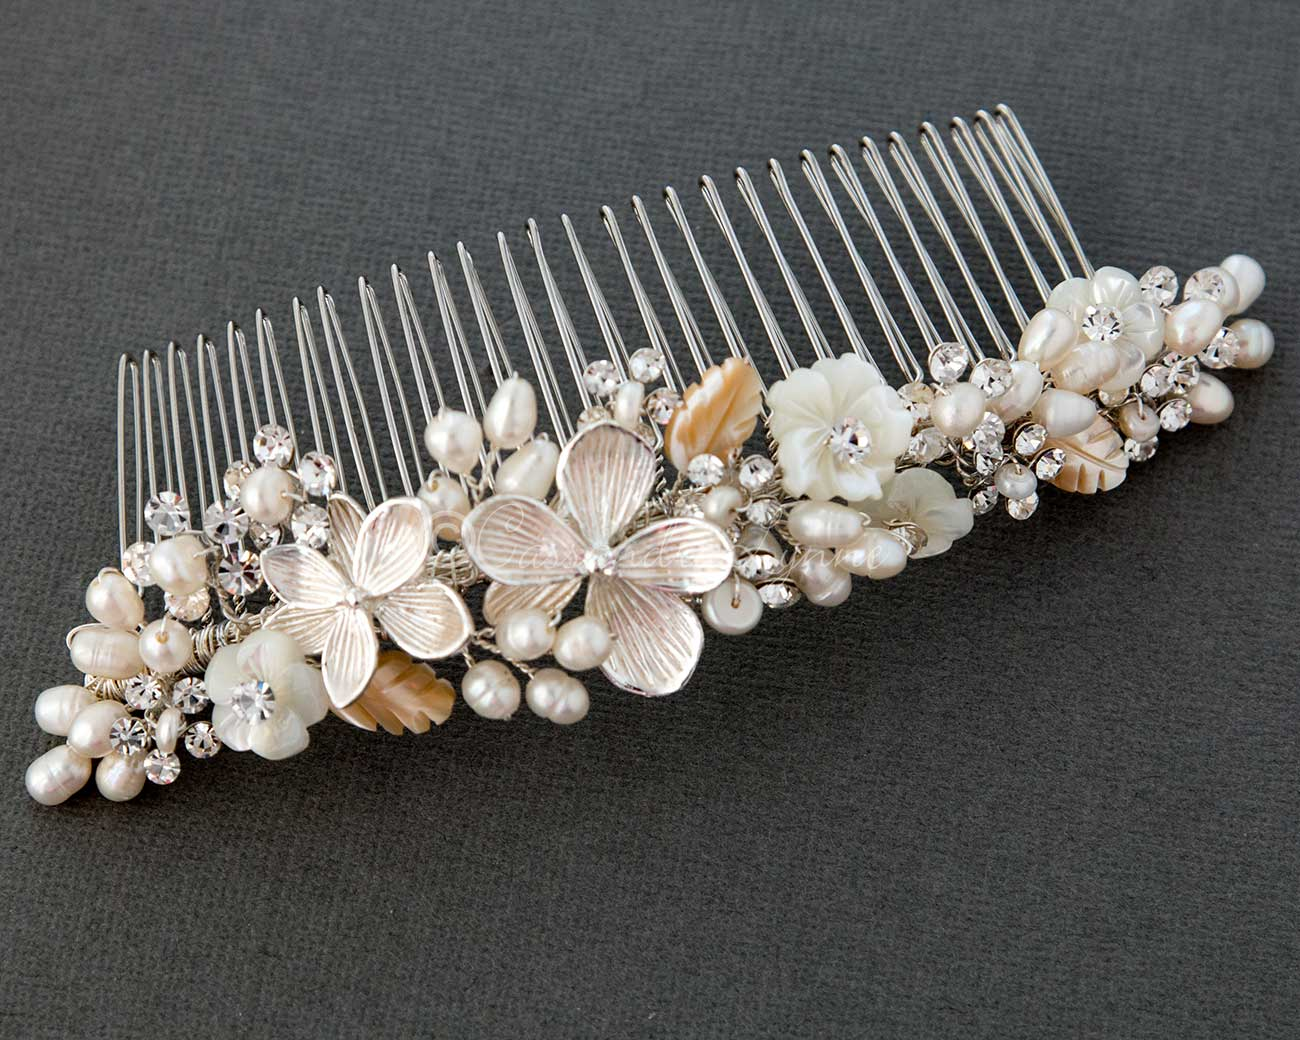 Bridal Comb of Shell Flowers and Leaves